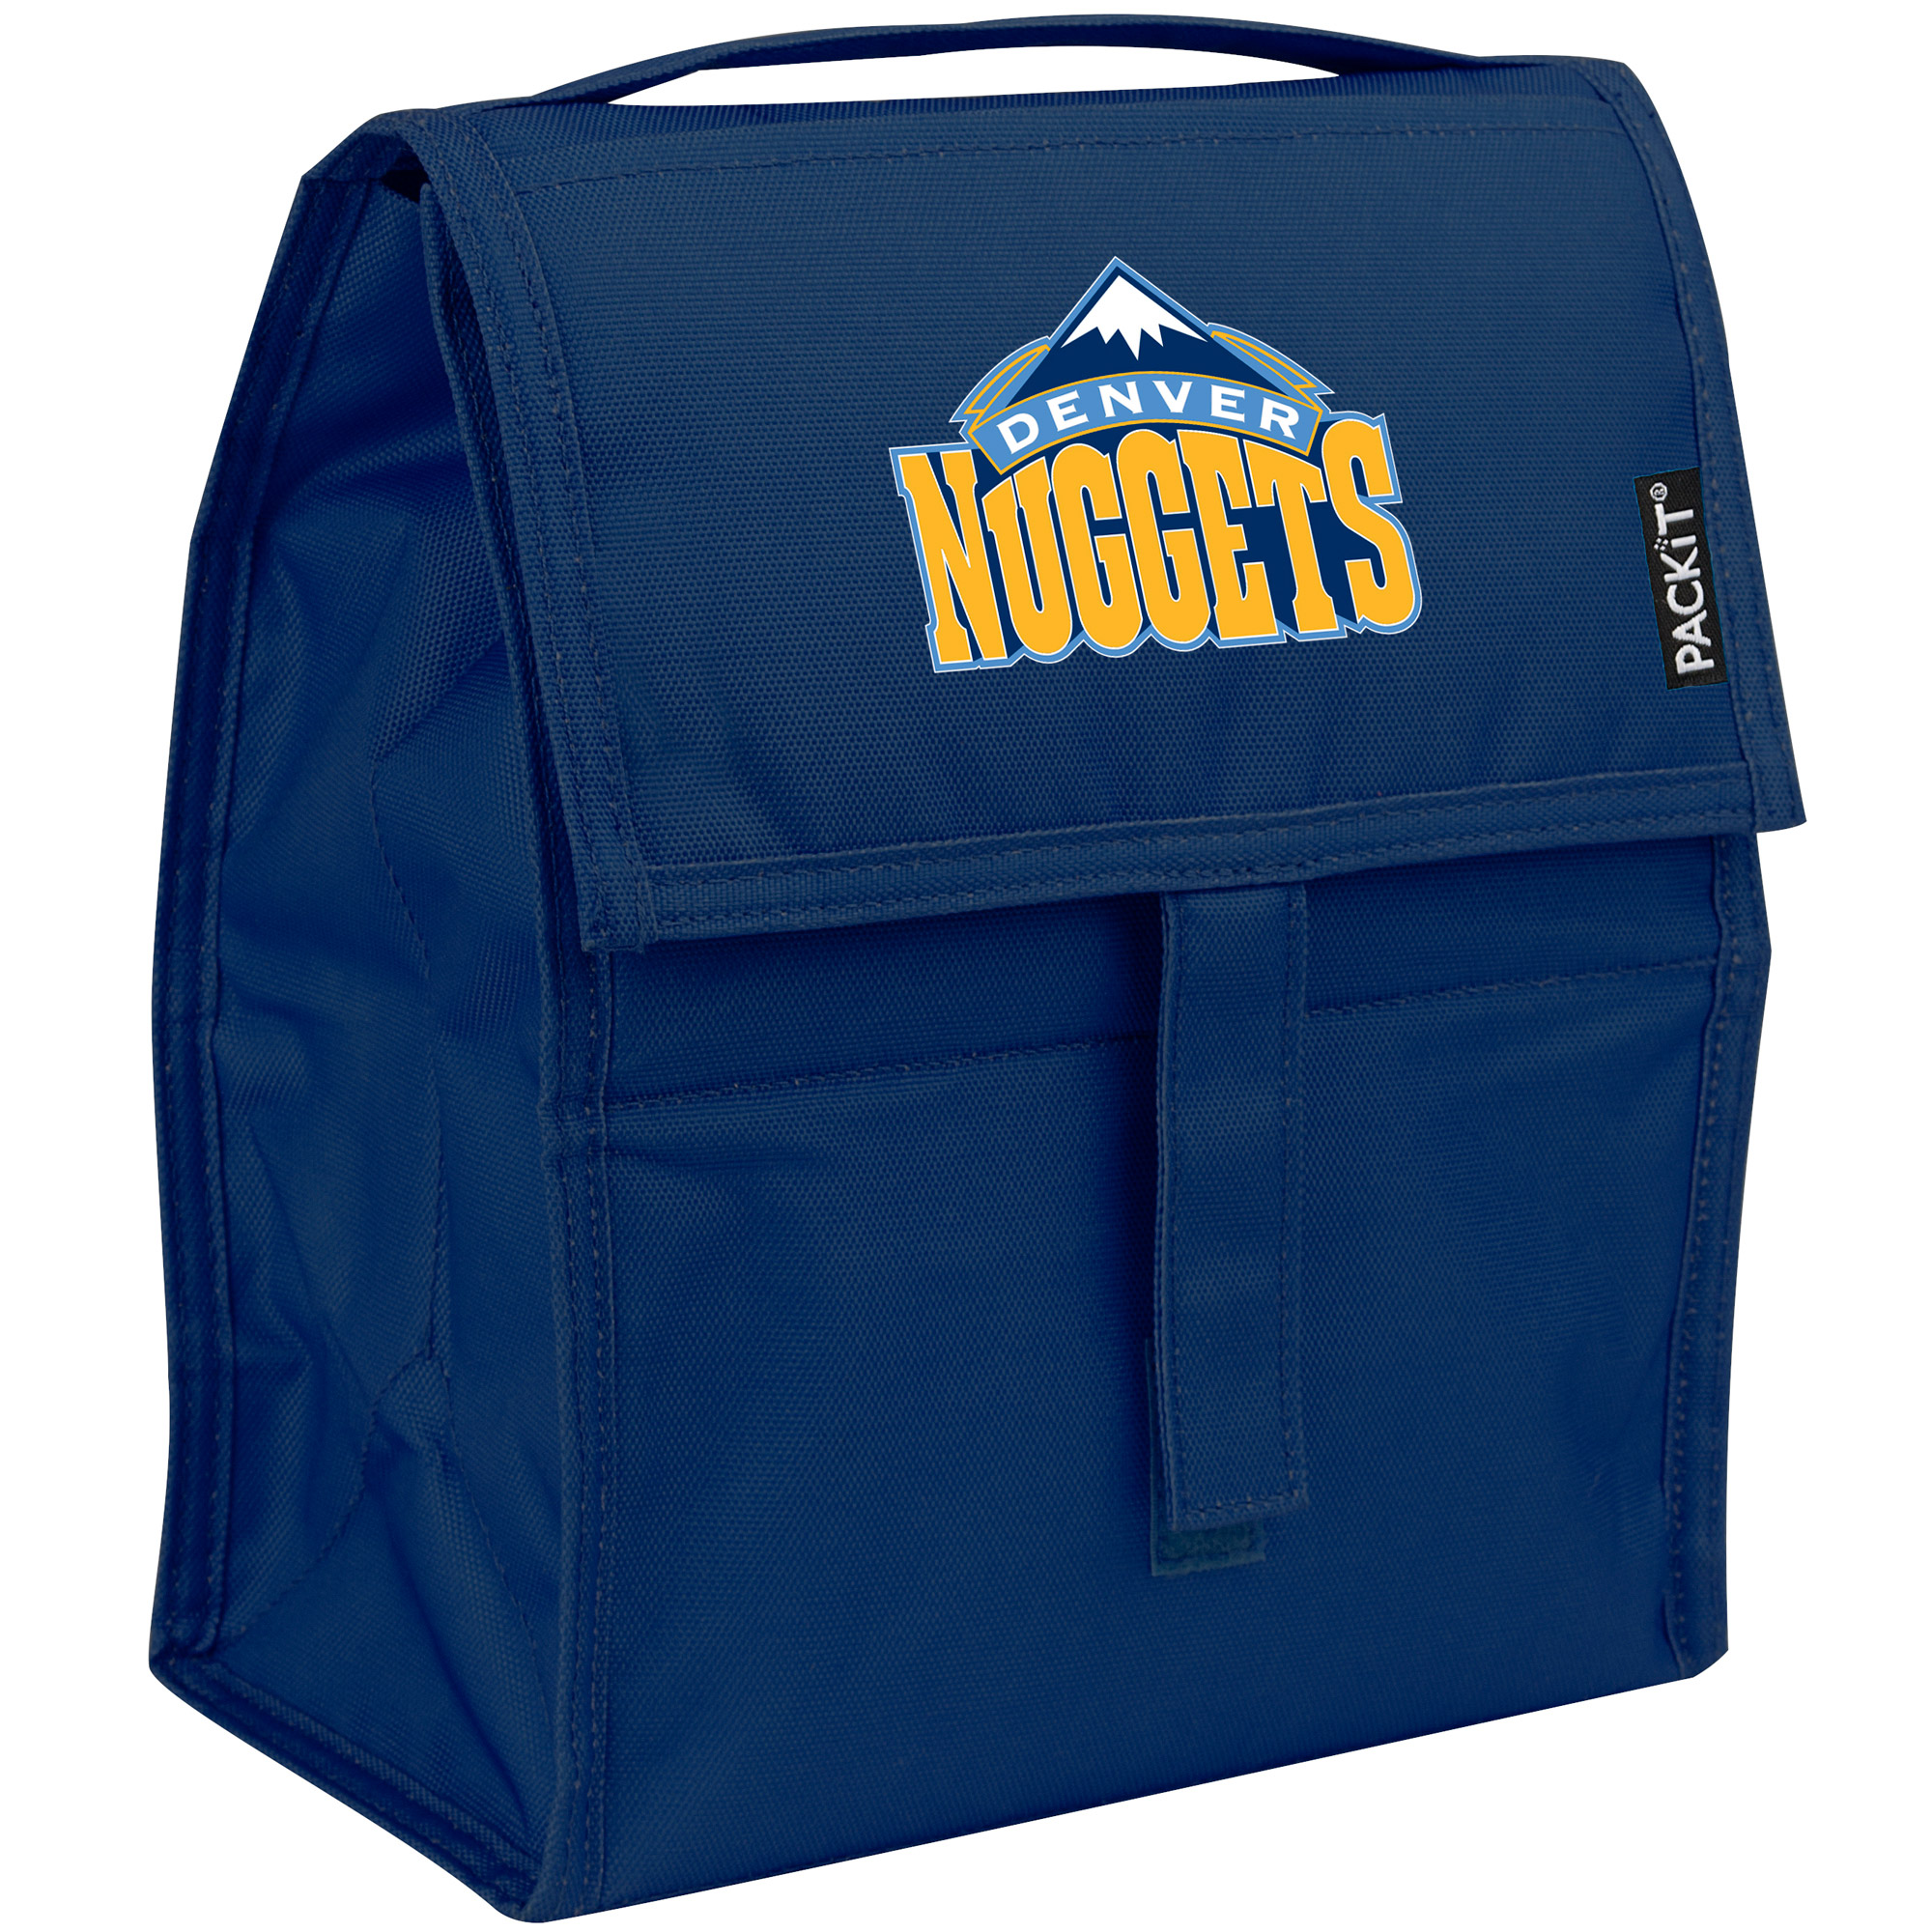 Denver Nuggets PackIt Lunch Box - No Size